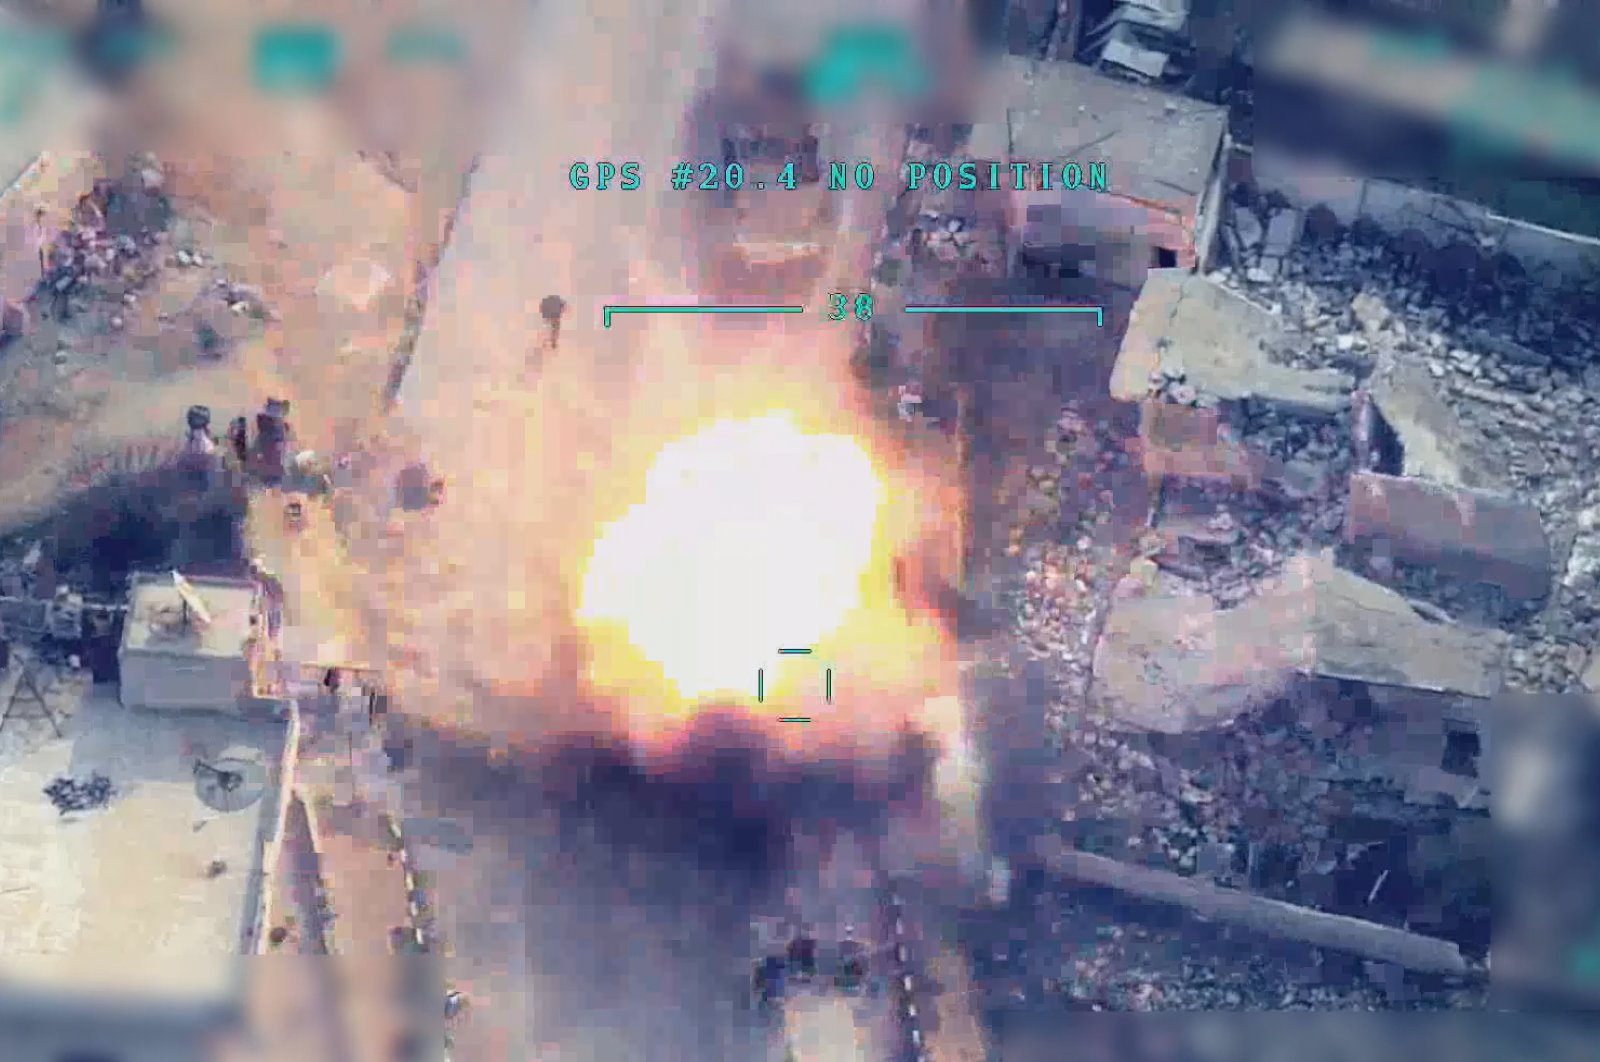 The footage shows a Turkish drone hitting Assad regime elements in the northern Syrian town of Idlib. (AA Photo)